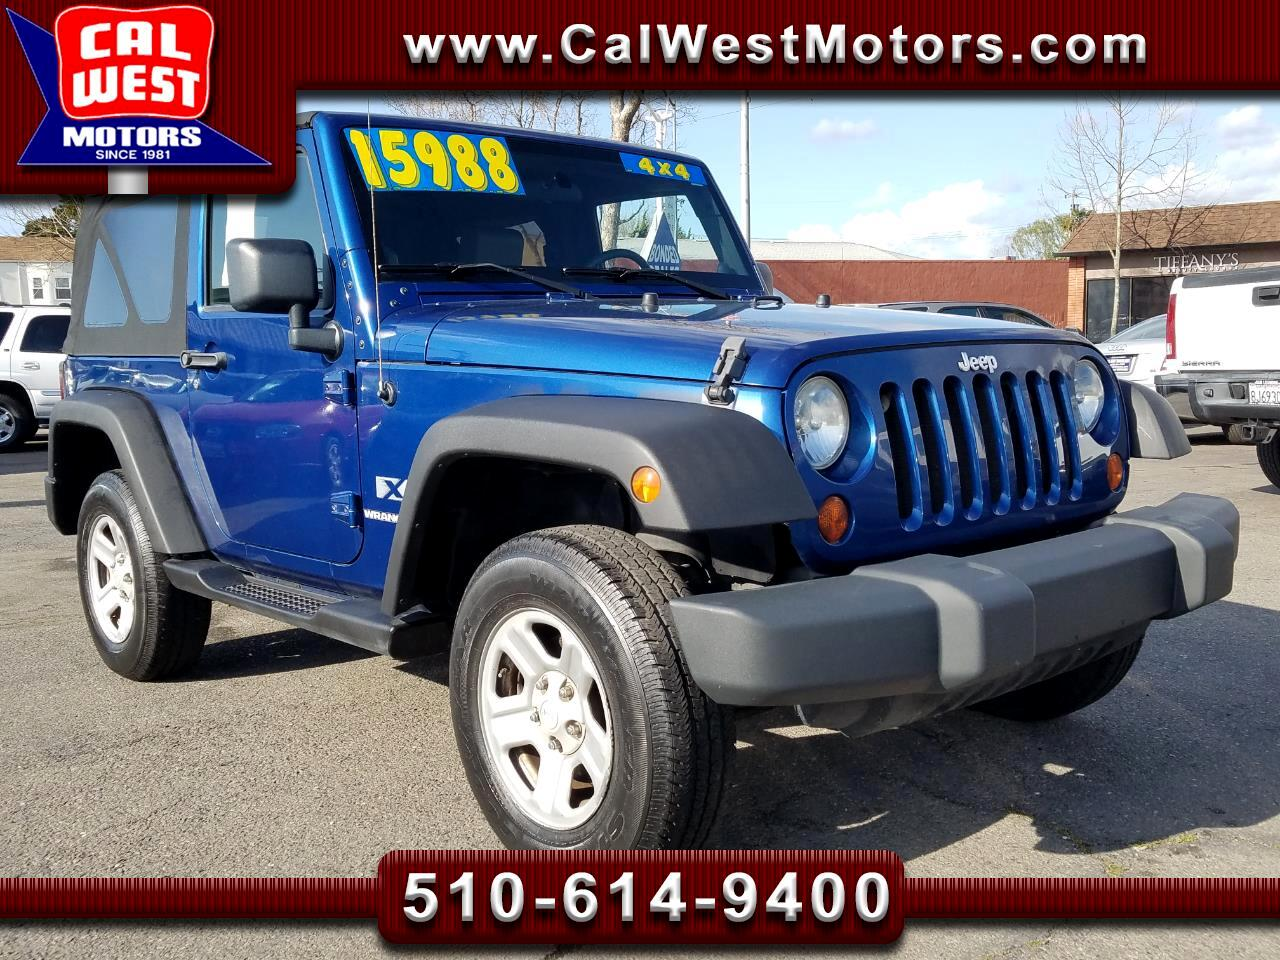 2009 Jeep Wrangler 4X4 V6 5-Speed Leathr LoMiles 1Owner GreatMtnceHis